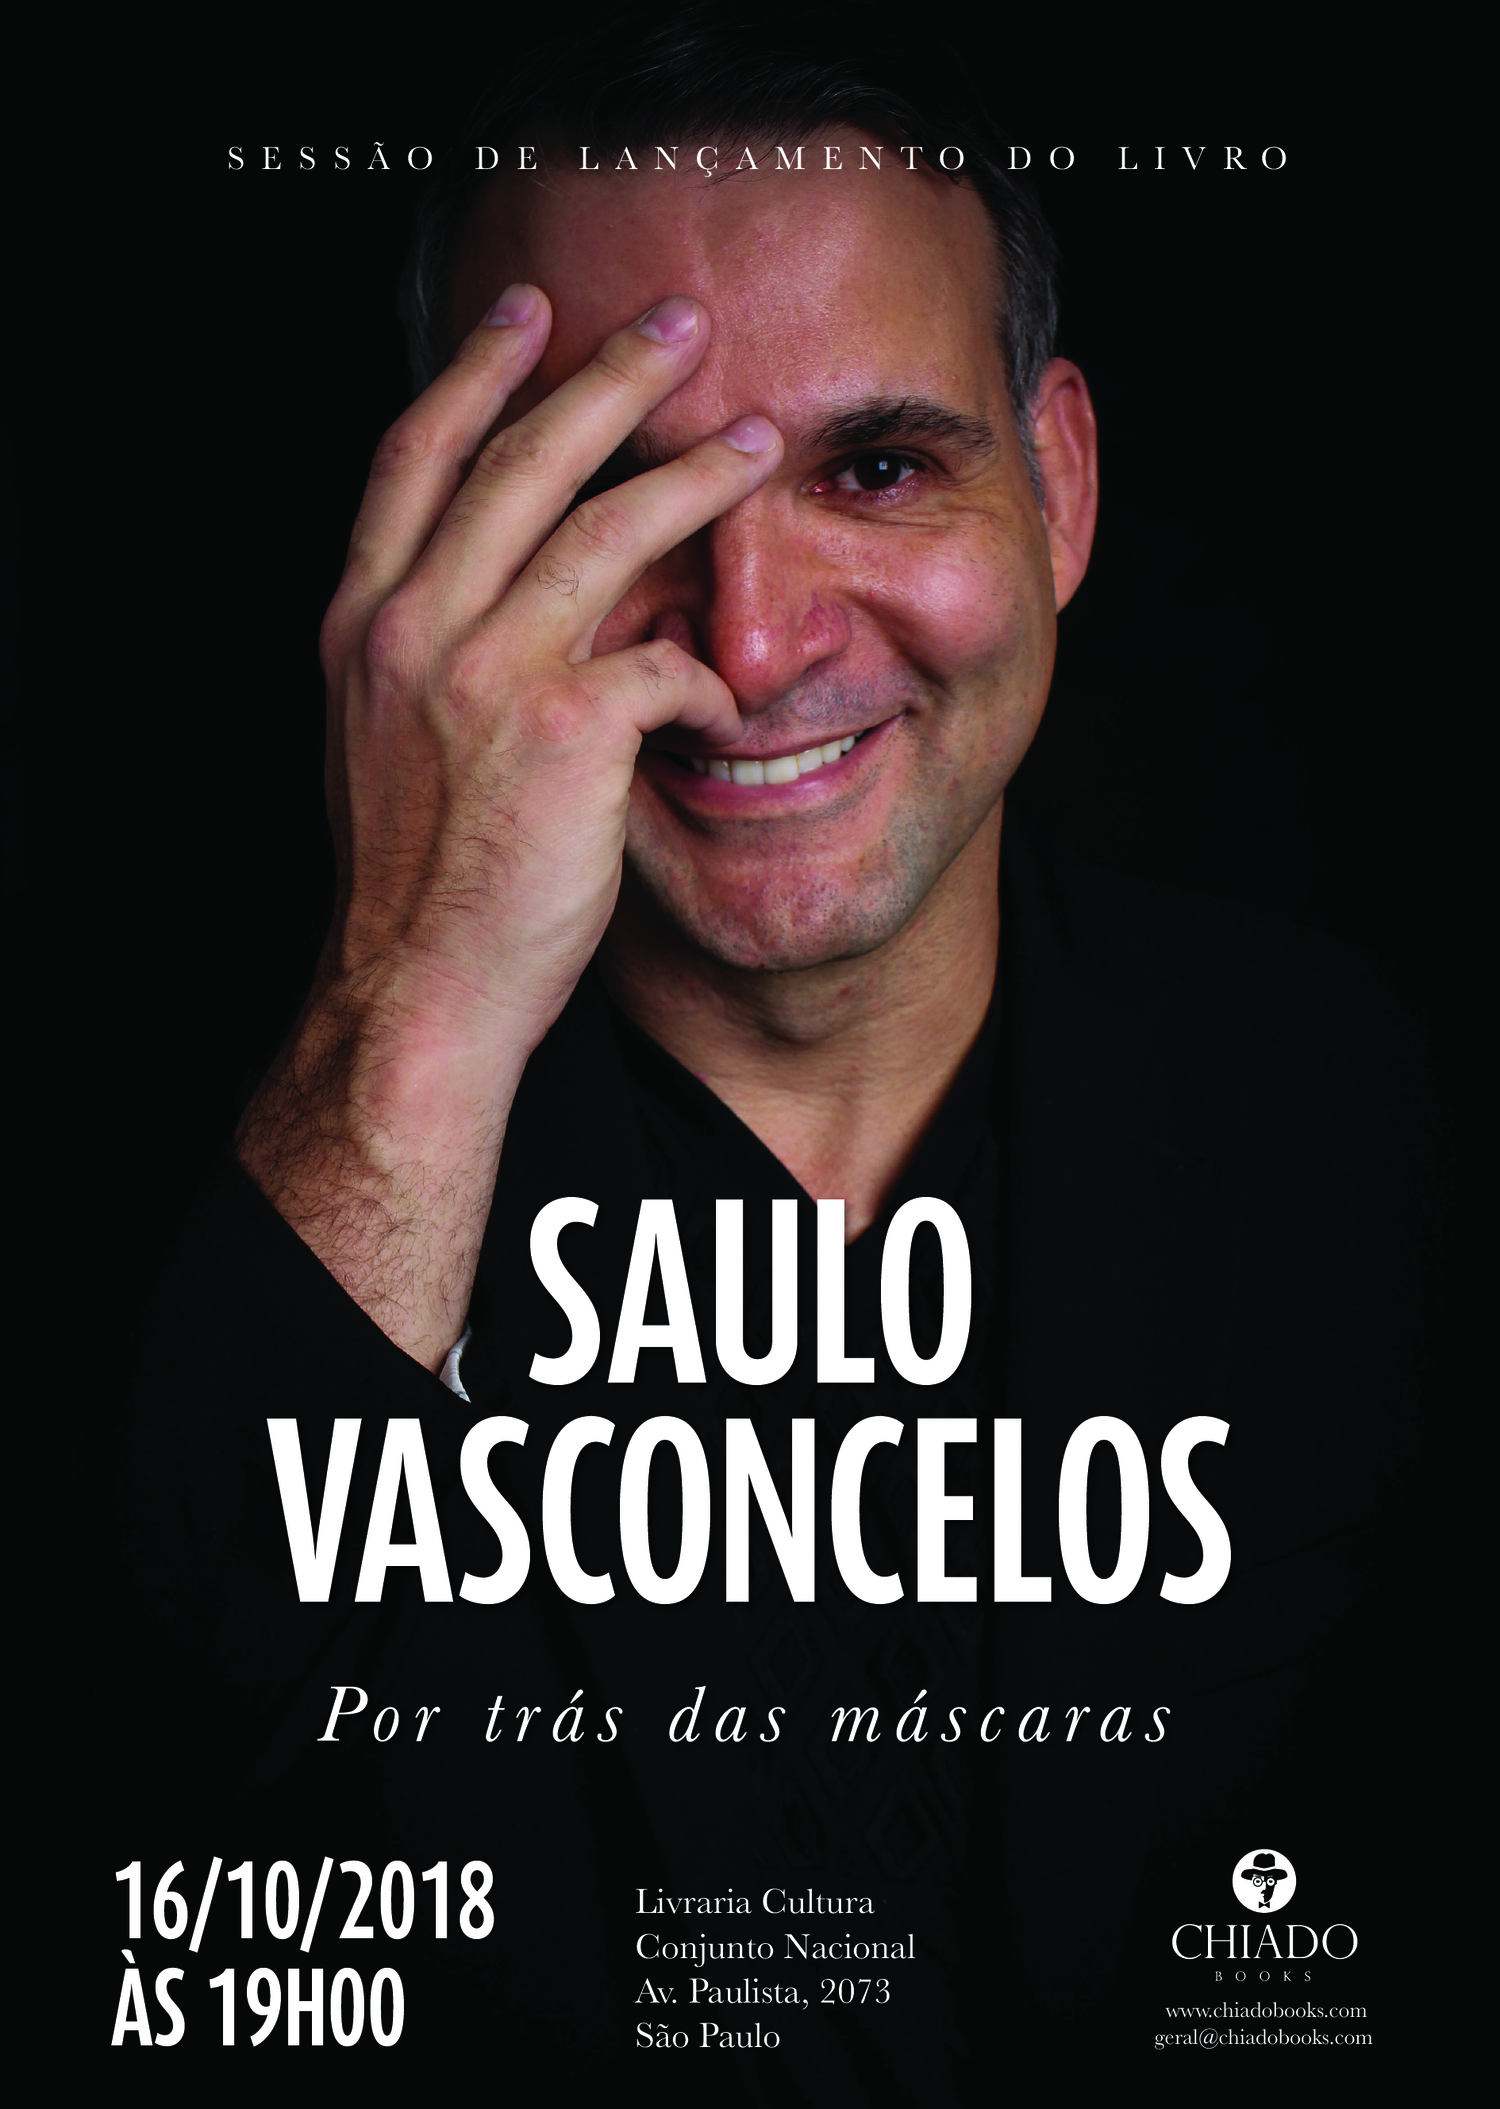 BWW Interview: One of the Greatest Names of Brazilian Musical Theater Saulo Vasconcelos Launches the Auto-Biography POR TRAS DAS MASCARAS (Behind The Masks)